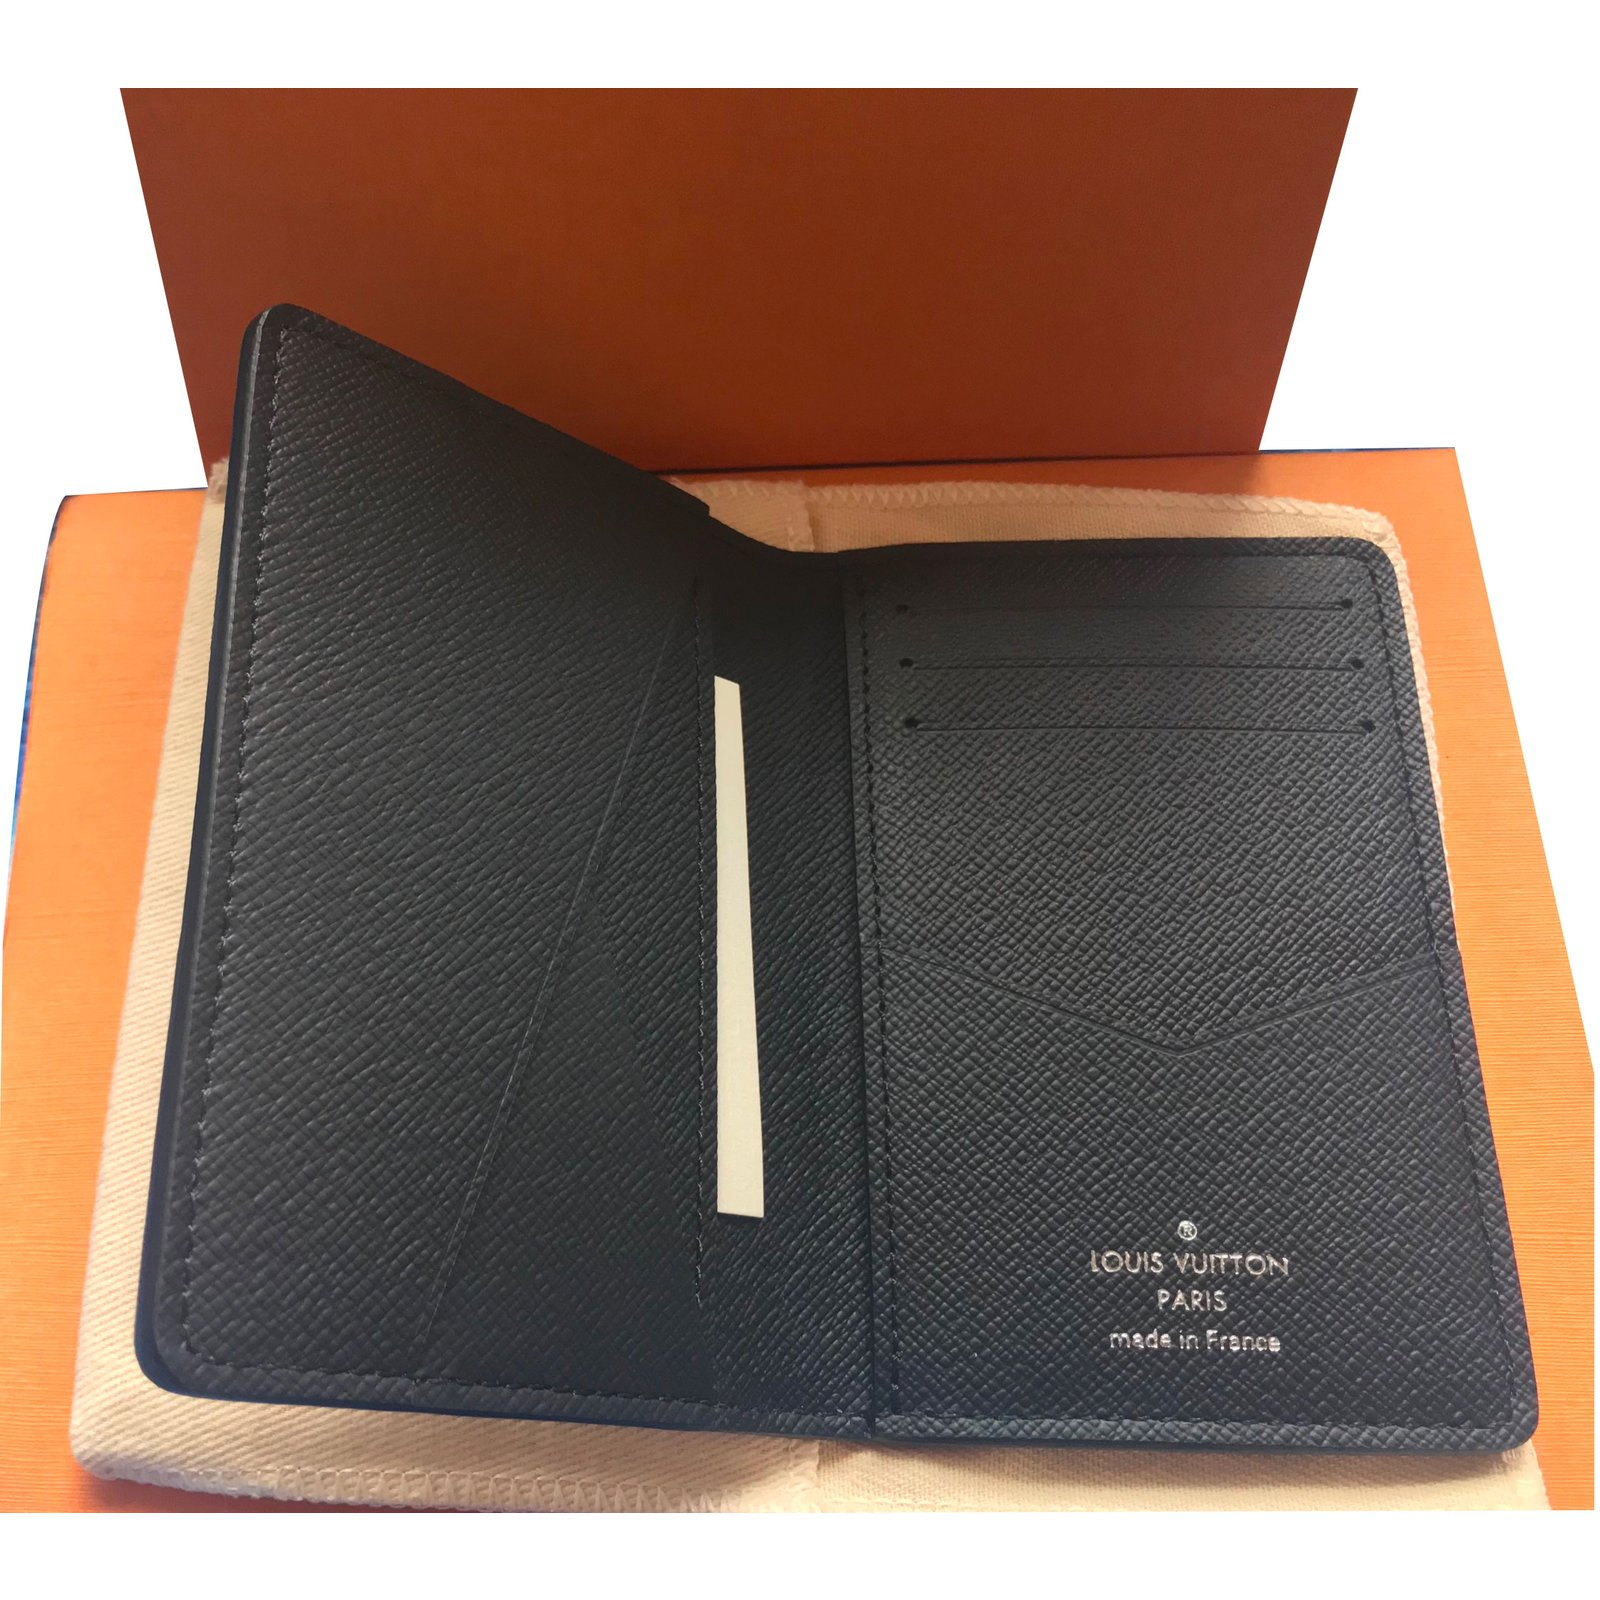 695408fb8415 Louis Vuitton Pocket Organizer Wallets Small accessories Leather ...